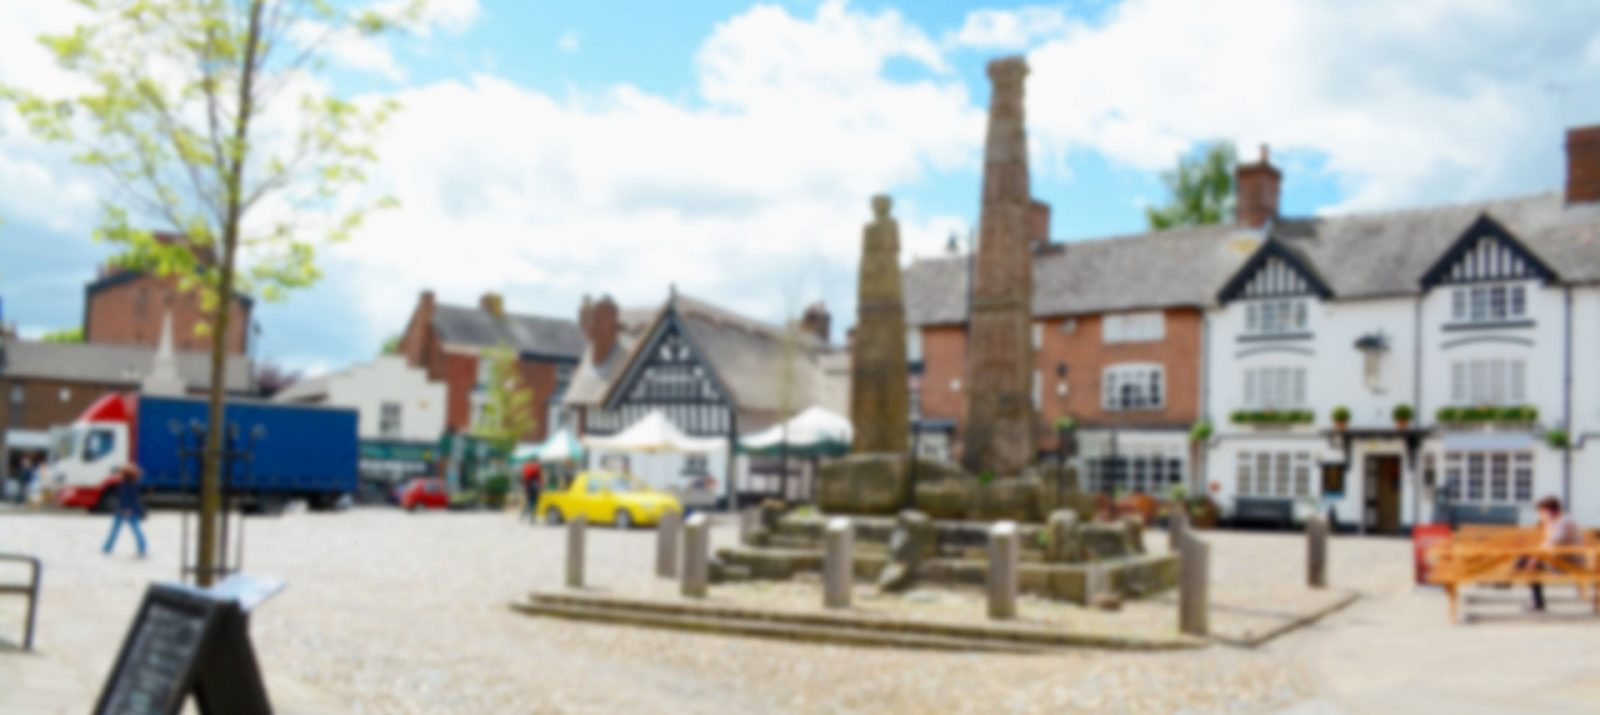 Lawyers In Sandbach, Legal Services, Solicitors, Lawyers & Attorneys, Local Solicitors Cheshire